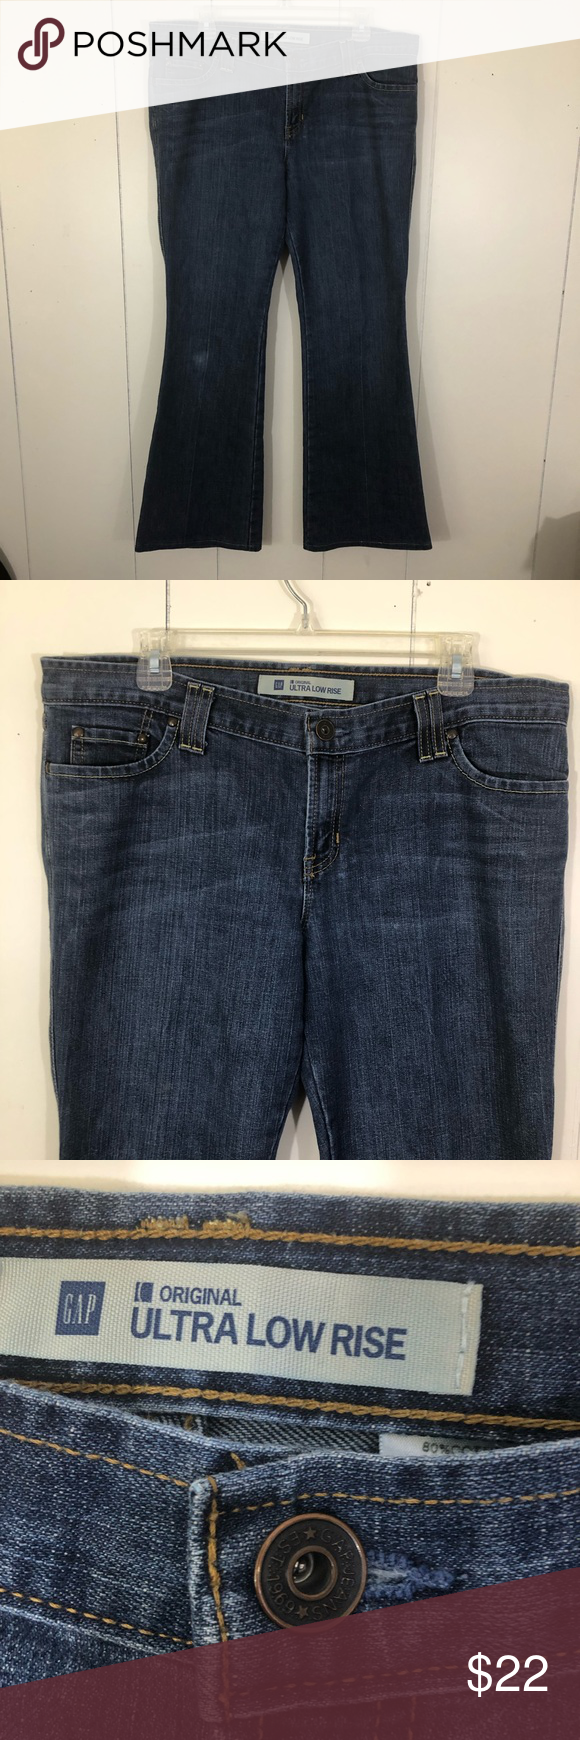 classcic how to choose popular style GAP Ultra Low Rise Flare Jeans size 14 GAP Ultra Low Rise ...